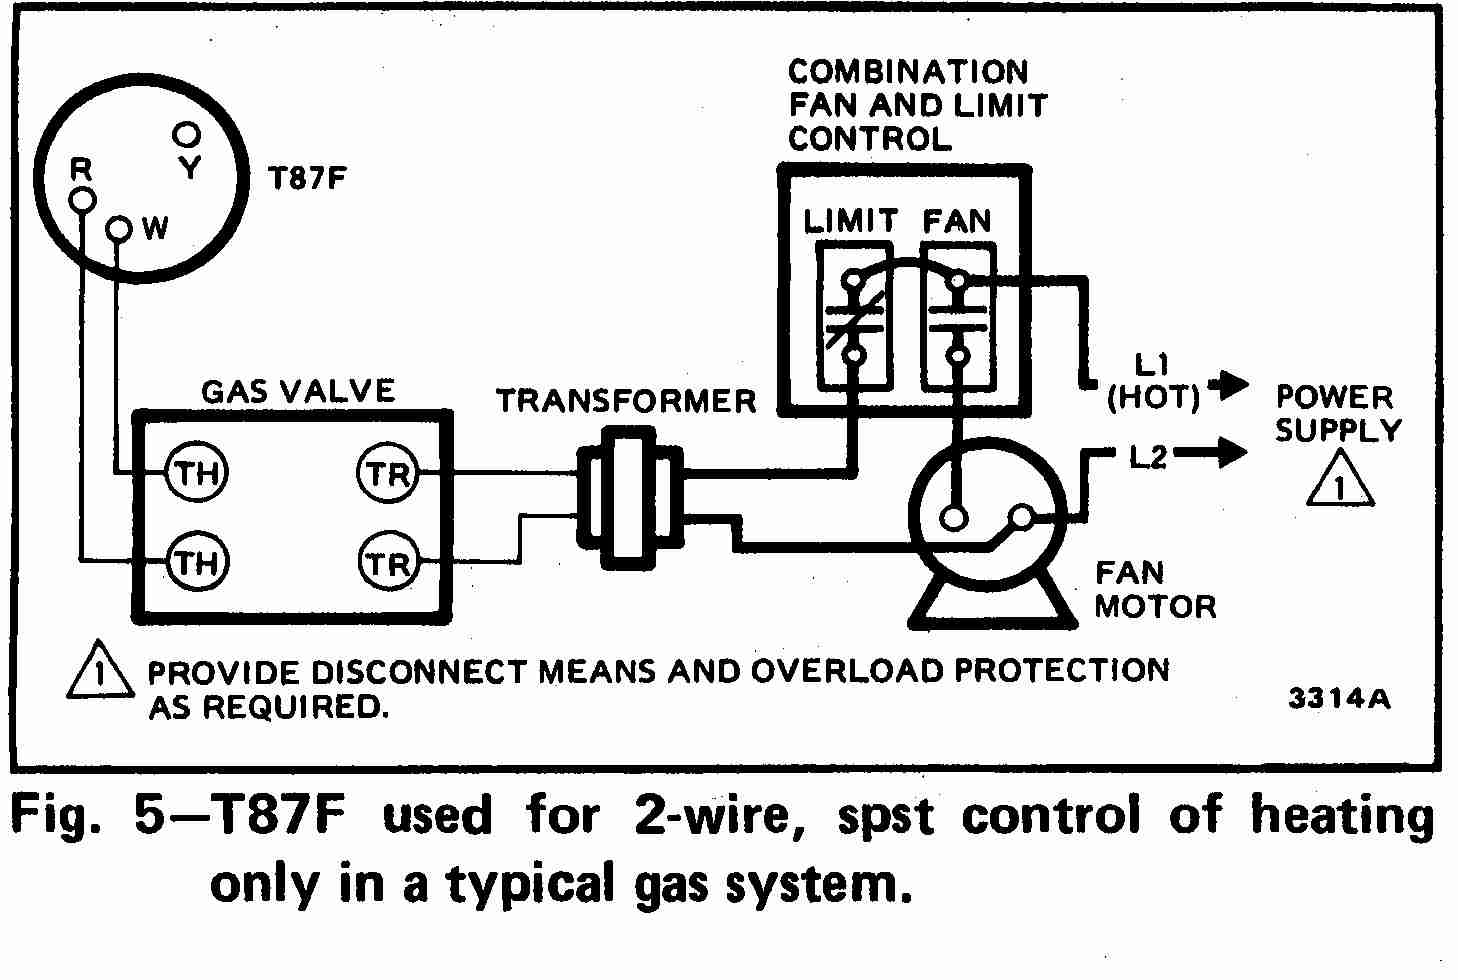 TT_T87F_0002_2Wg_DJF room thermostat wiring diagrams for hvac systems dayton heater wiring diagram at mifinder.co